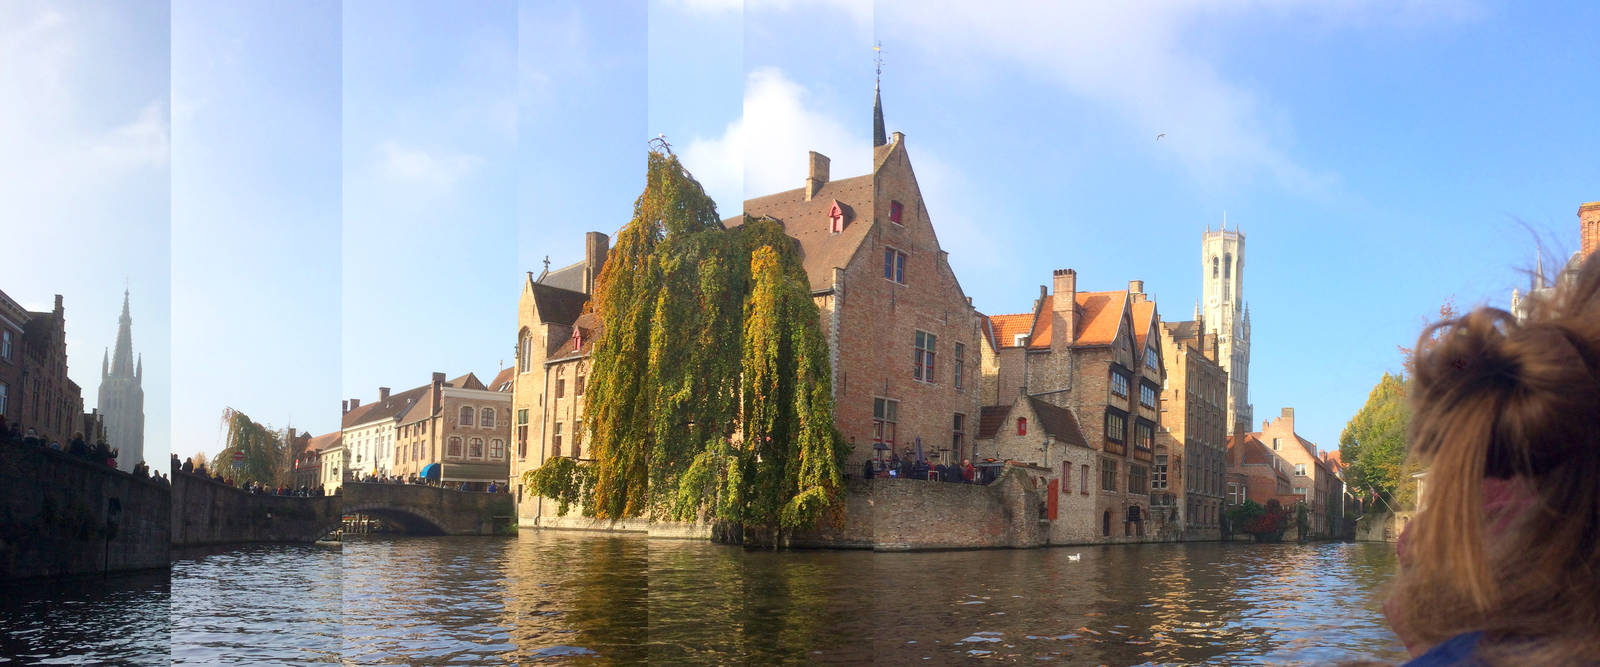 Brugge from the Dijver